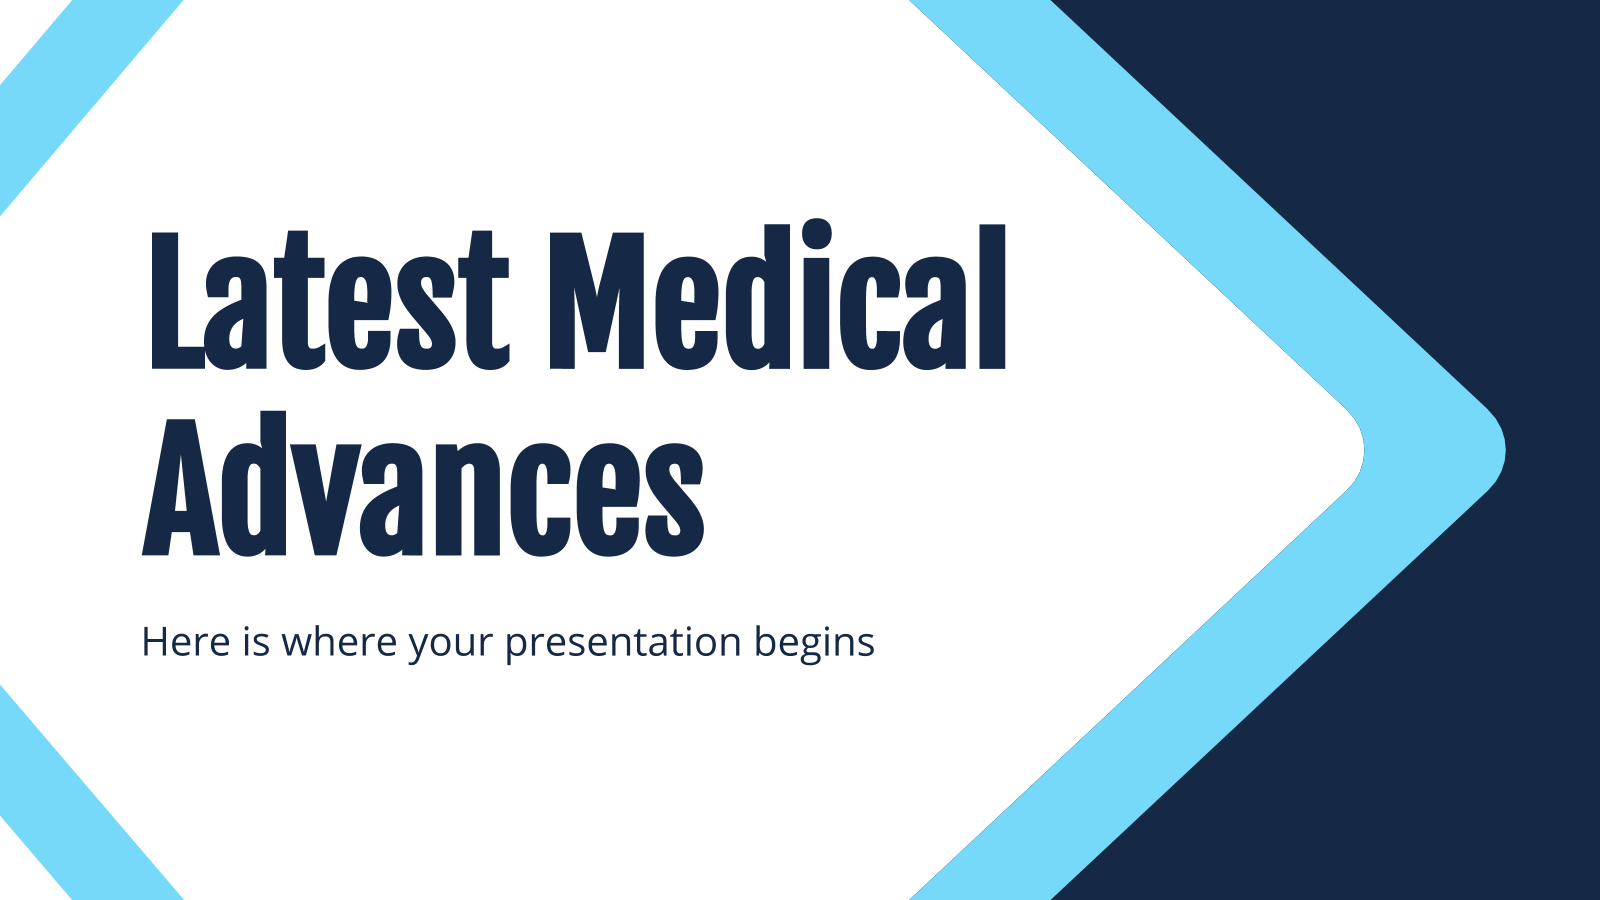 Latest Medical Advances presentation template